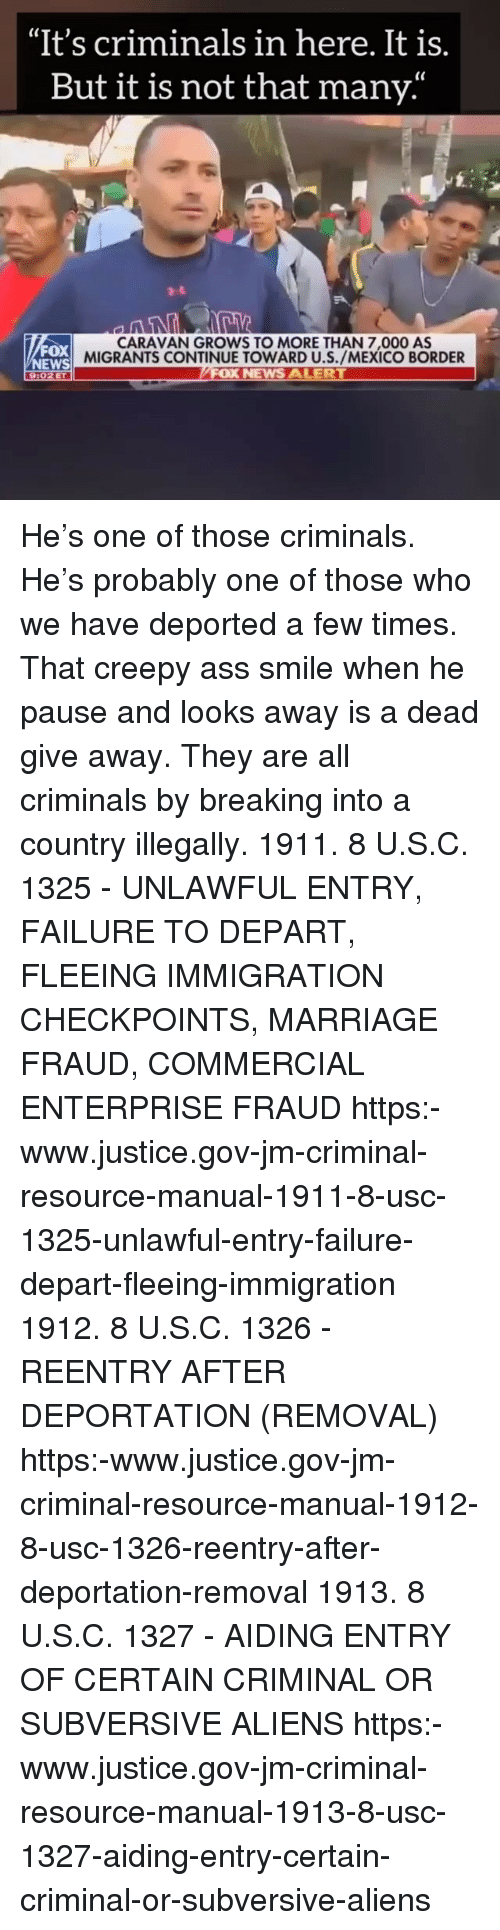 "Ass, Creepy, and Marriage: ""It's criminals in here. It is.  But it is not that many'  CARAVAN GROWS TO MORE THAN 7,000 AS  MIGRANTS CONTINUE TOWARD U.S./MEXICO BORDER  FOX  NEWS  9:02ET He's one of those criminals. He's probably one of those who we have deported a few times. That creepy ass smile when he pause and looks away is a dead give away. They are all criminals by breaking into a country illegally. 1911. 8 U.S.C. 1325 - UNLAWFUL ENTRY, FAILURE TO DEPART, FLEEING IMMIGRATION CHECKPOINTS, MARRIAGE FRAUD, COMMERCIAL ENTERPRISE FRAUD https:-www.justice.gov-jm-criminal-resource-manual-1911-8-usc-1325-unlawful-entry-failure-depart-fleeing-immigration 1912. 8 U.S.C. 1326 - REENTRY AFTER DEPORTATION (REMOVAL) https:-www.justice.gov-jm-criminal-resource-manual-1912-8-usc-1326-reentry-after-deportation-removal 1913. 8 U.S.C. 1327 - AIDING ENTRY OF CERTAIN CRIMINAL OR SUBVERSIVE ALIENS https:-www.justice.gov-jm-criminal-resource-manual-1913-8-usc-1327-aiding-entry-certain-criminal-or-subversive-aliens"